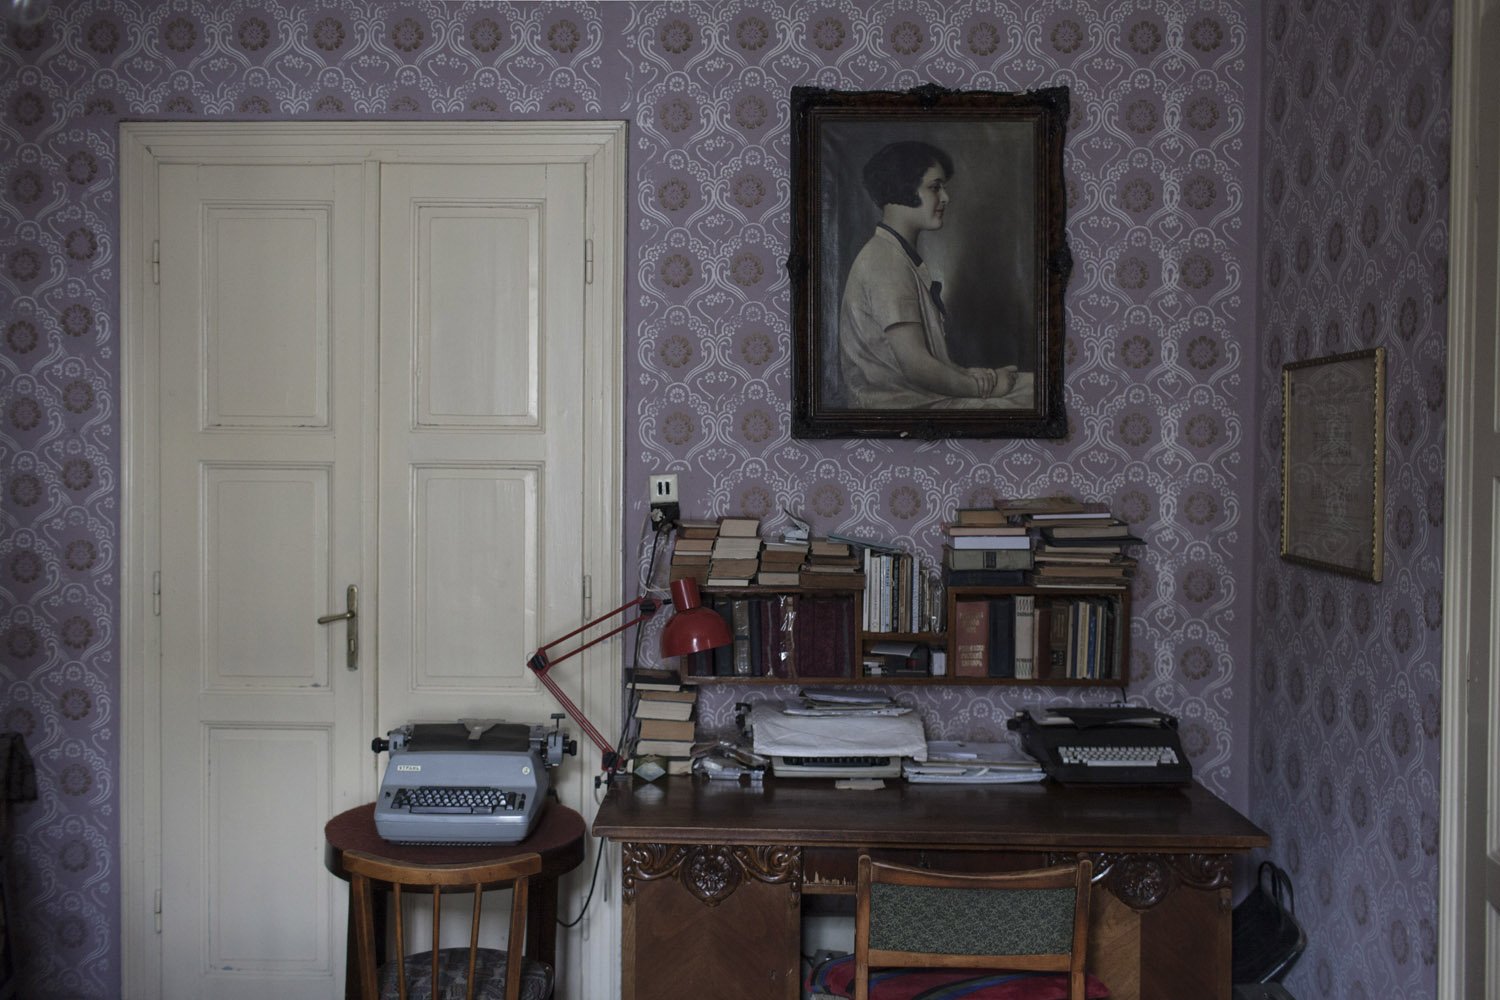 When the Jews of Khust were ordered to move into a ghetto, the Klein family fled into hiding in Budapest. Upon their return they found their house still standing, and one of them still lives there, a portrait of his mother hanging in the living room.